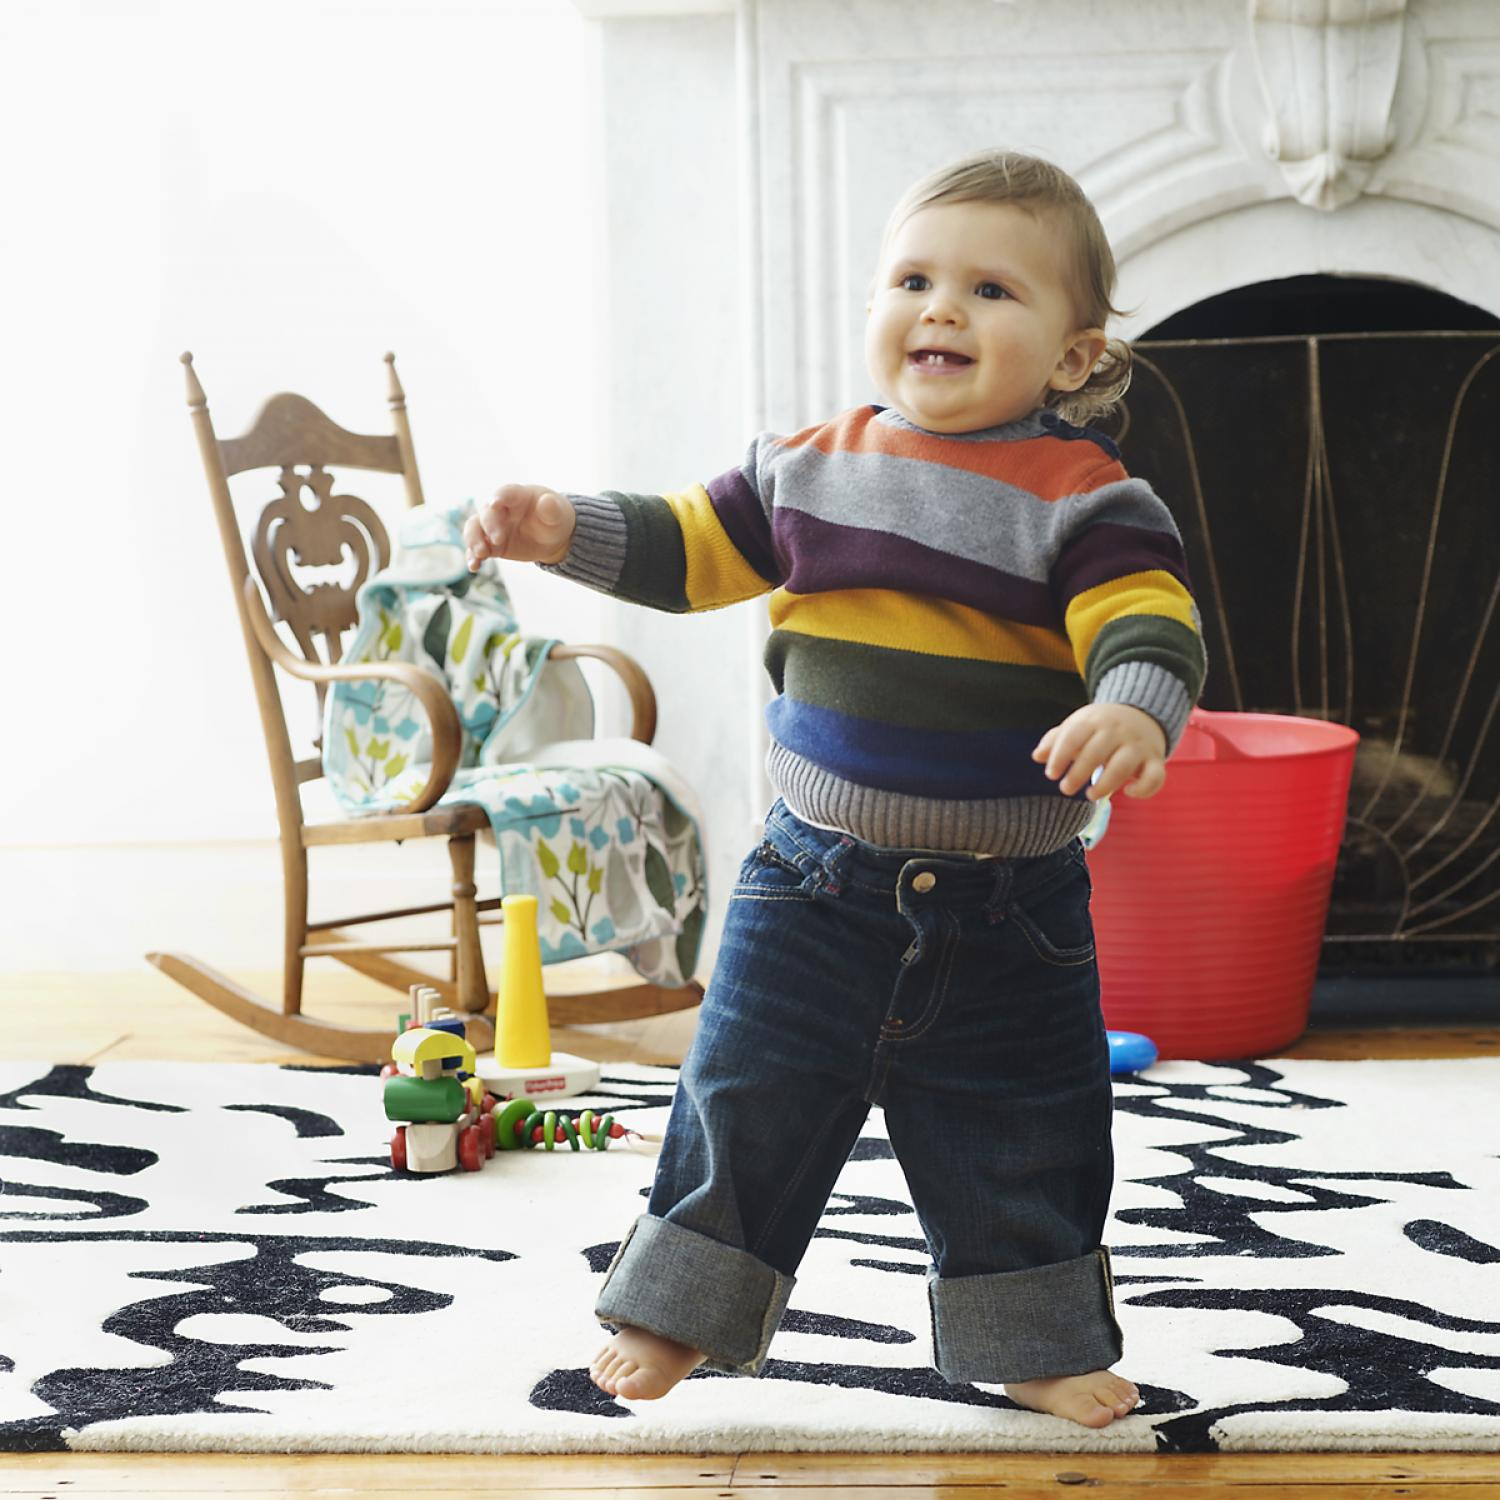 Does Wearing Shoes Help a Baby Learn to Walk Sooner?